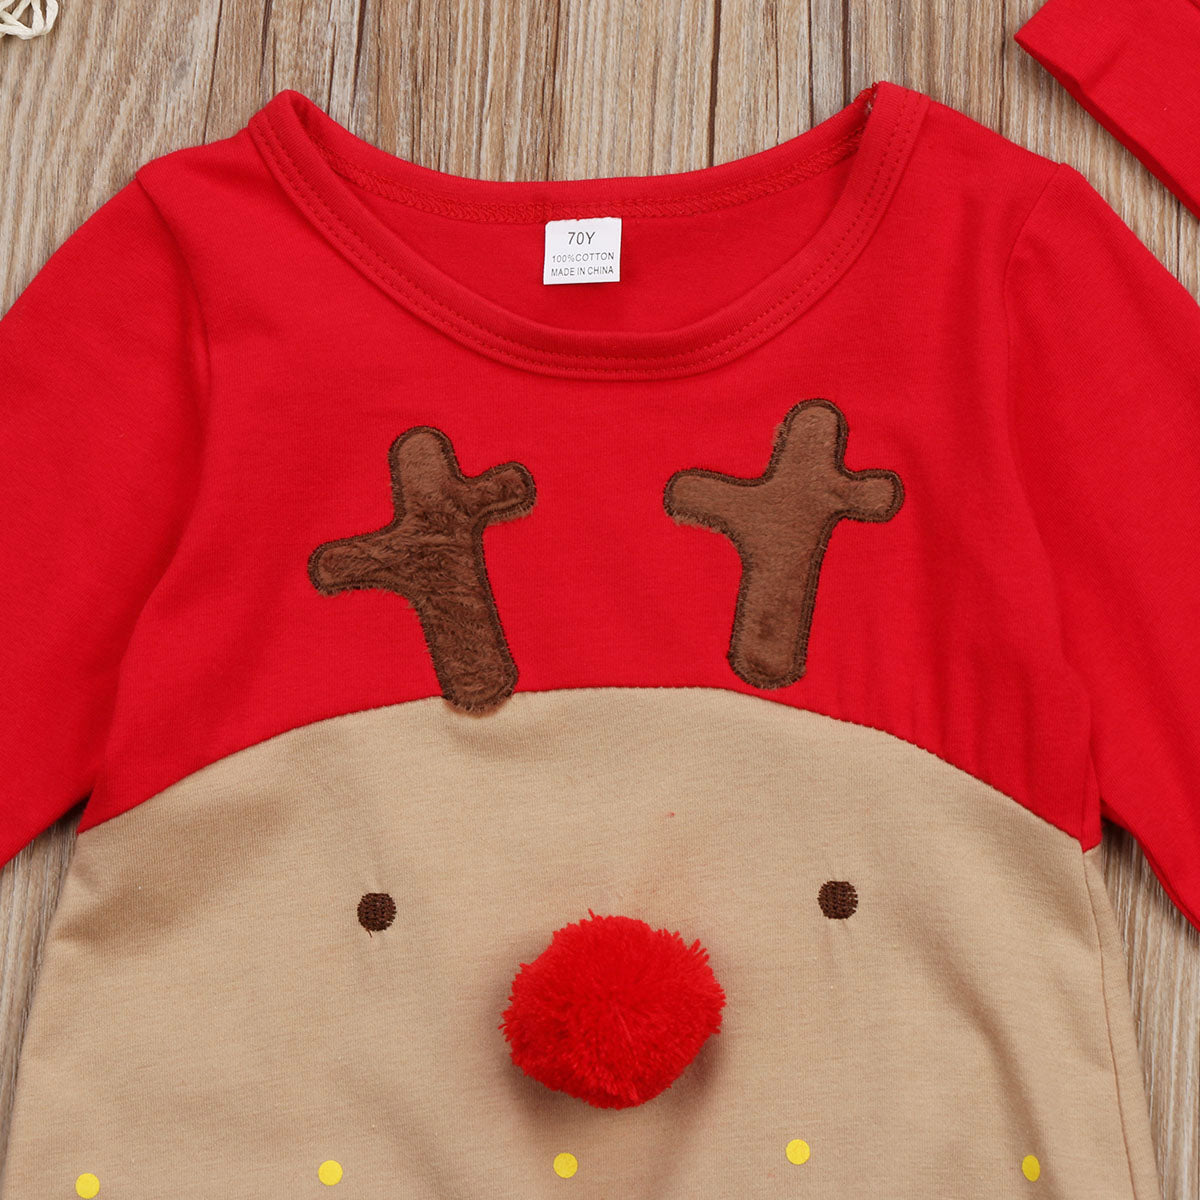 2Pcs Newborn Baby Boys Girl Christmas Rompers Long Sleeve Deer Romper Jumpsuit Hat Sleepwear Party Costume Baby Clothes